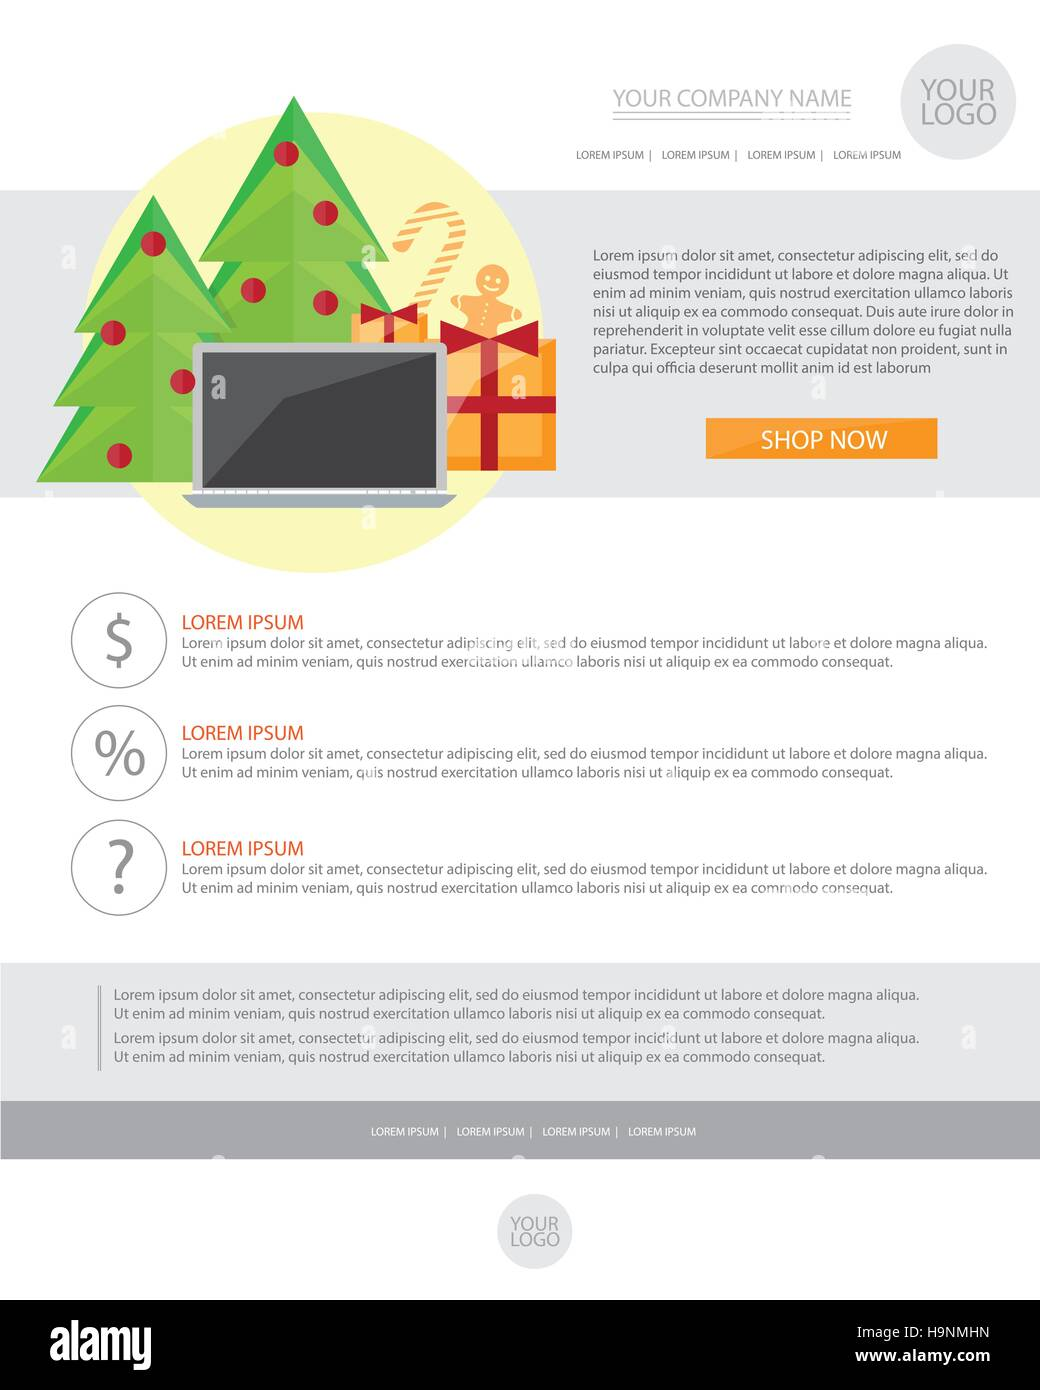 Happy new year holiday greeting email template in flat style vector happy new year holiday greeting email template in flat style vector illustration m4hsunfo